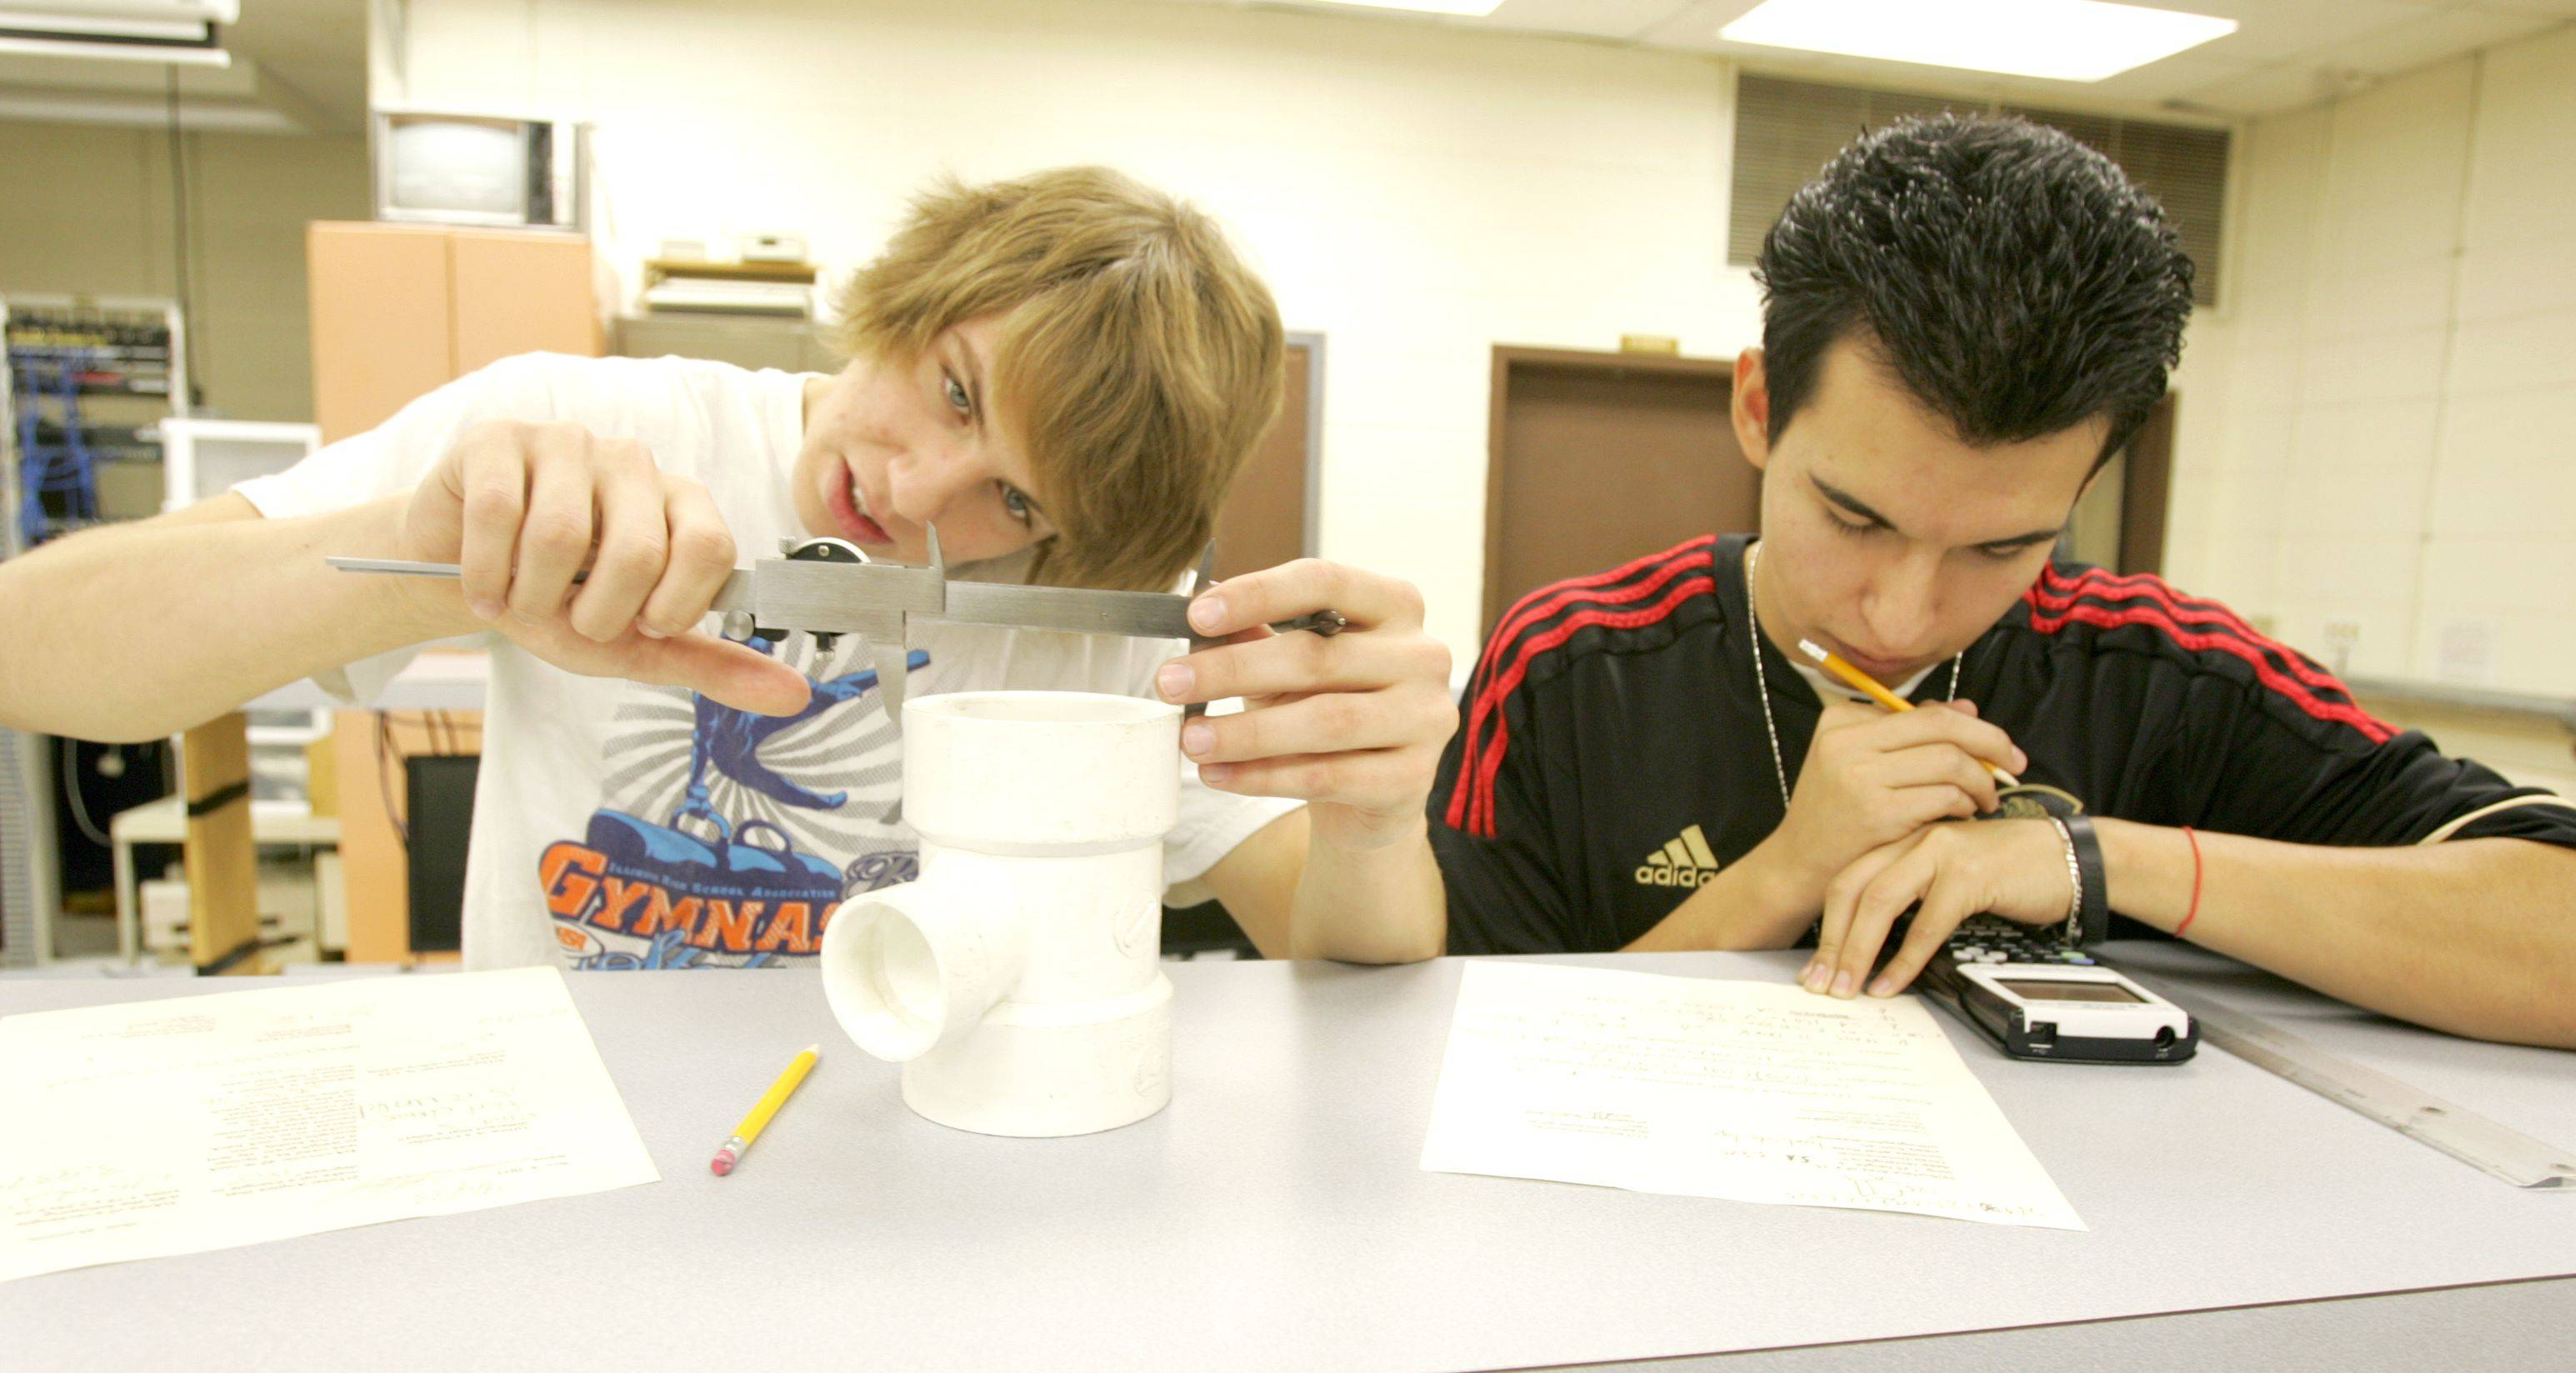 Norman Vitellaro III, left, measures diameter and height to find volume and surface area in his introductory engineering class at Fenton High School in Bensenville with Alejandro Mora Jr.